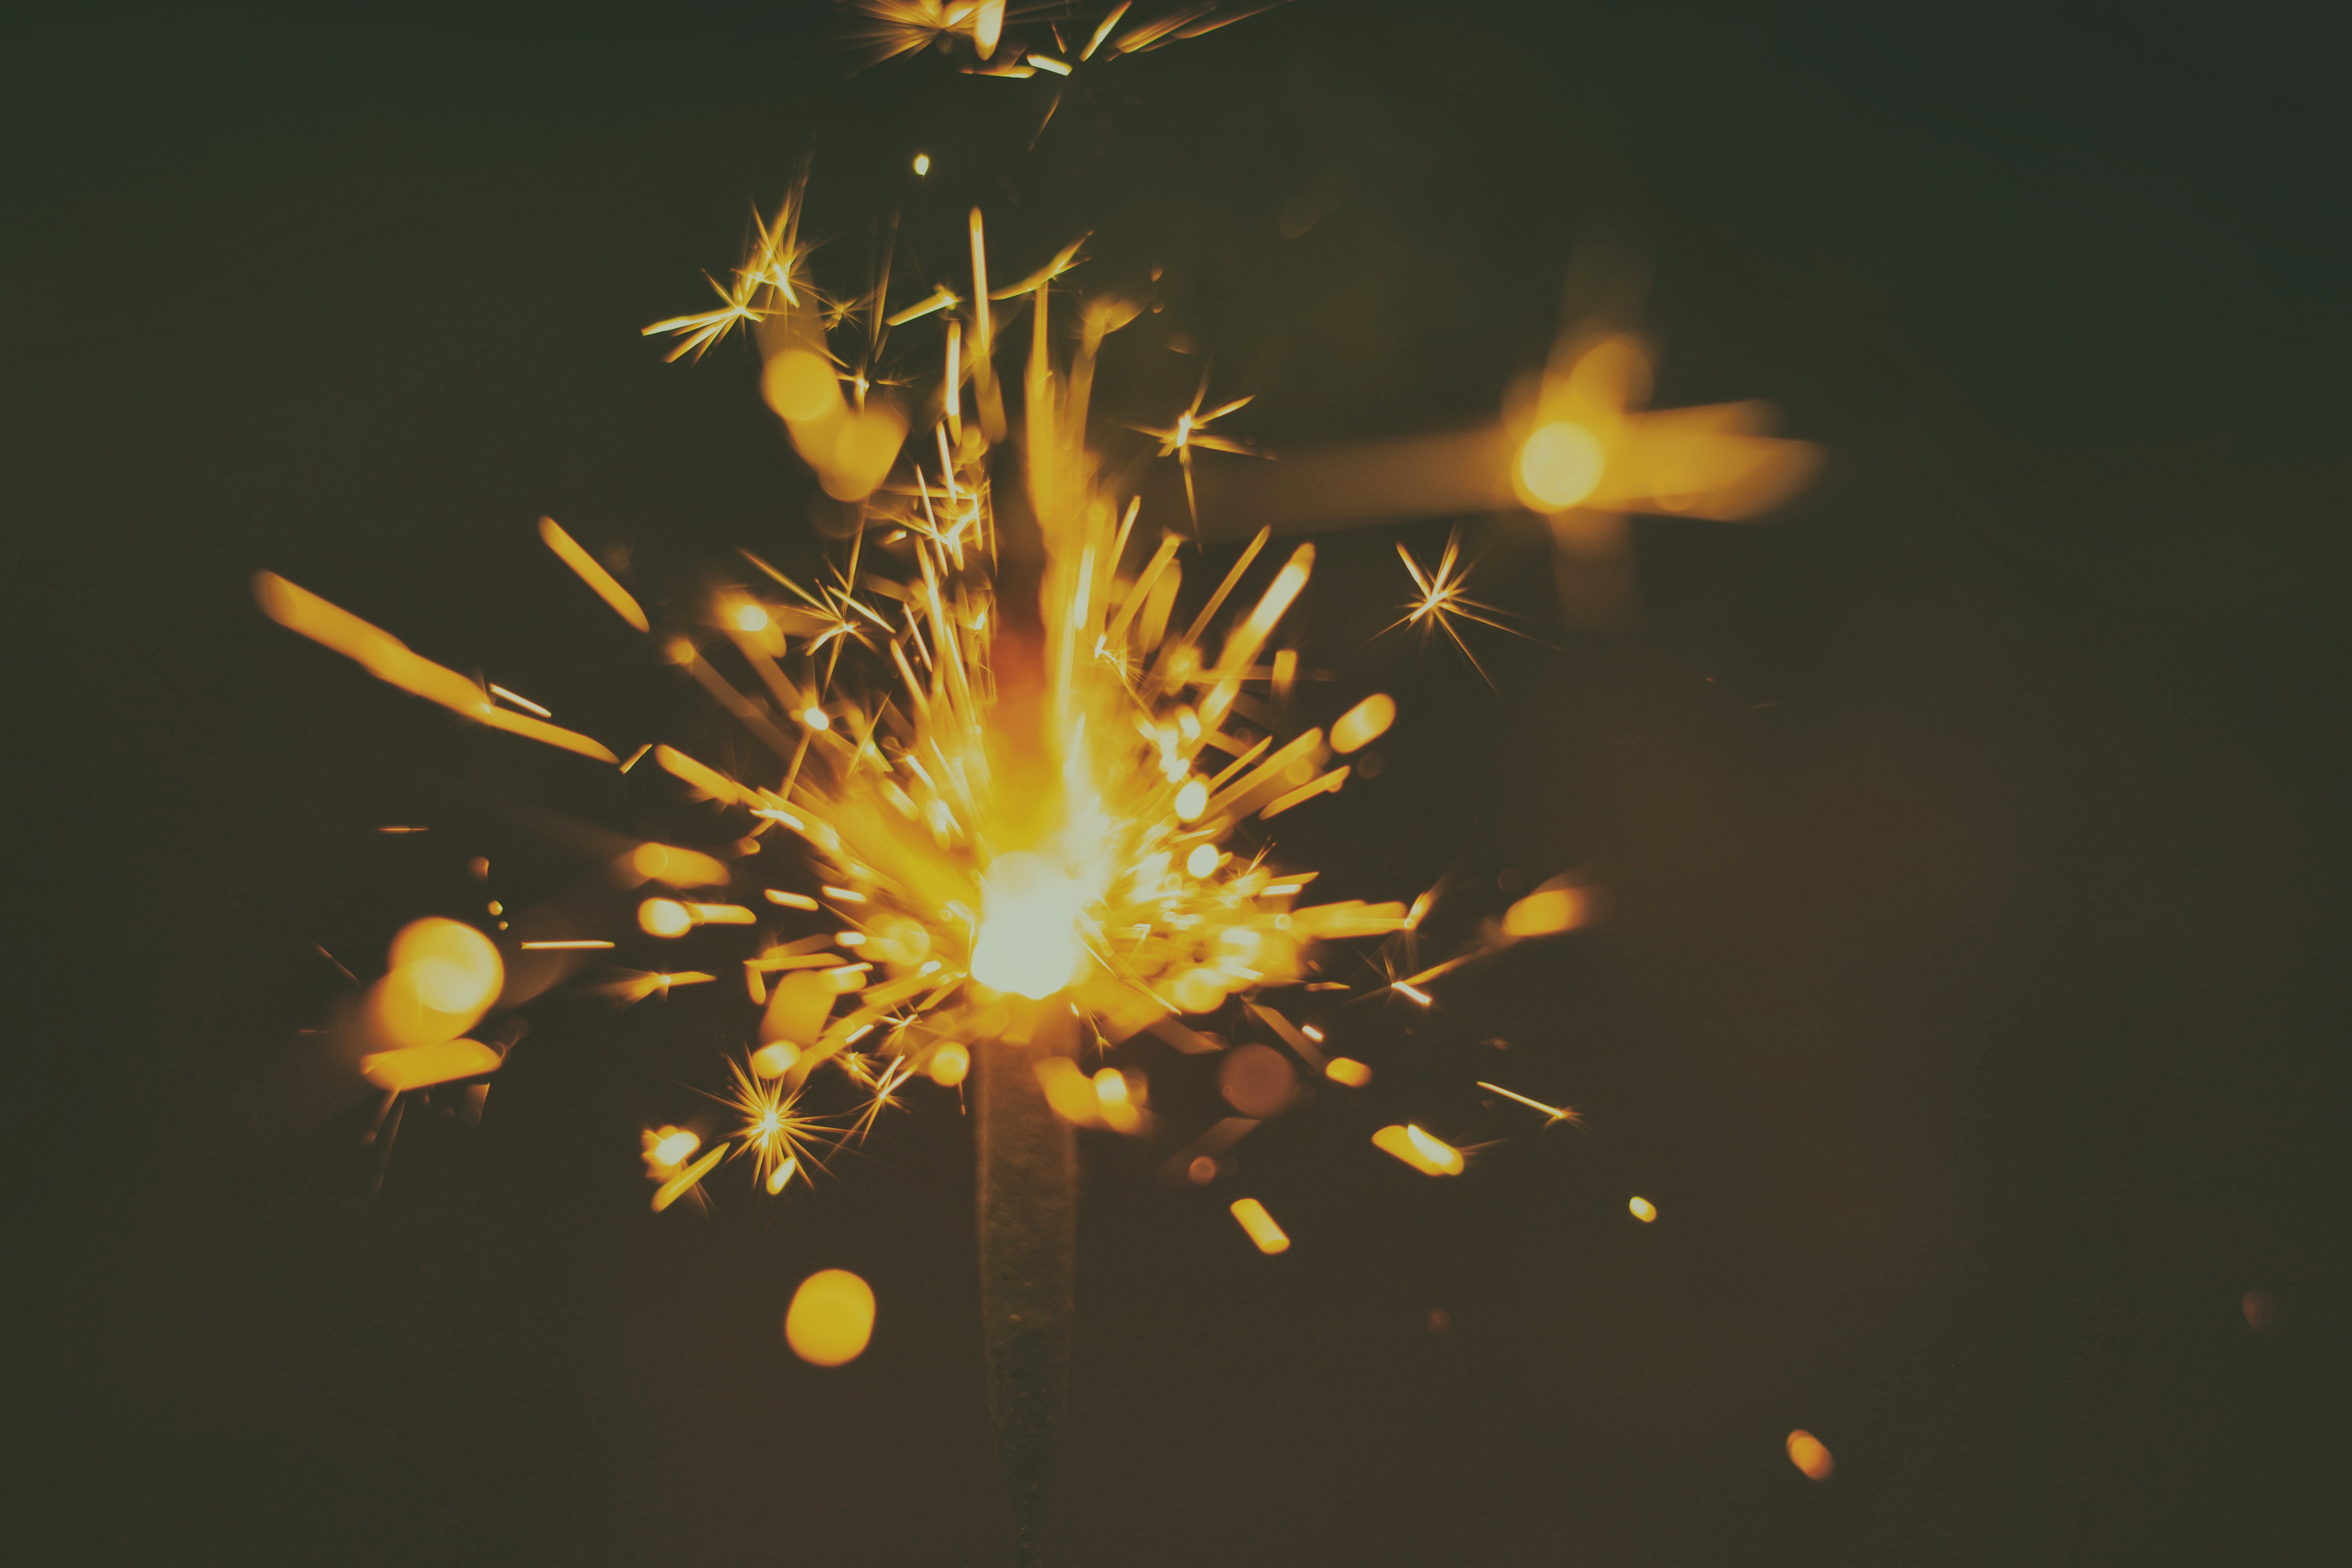 Free stock photo of light, abstract, blur, sparkler